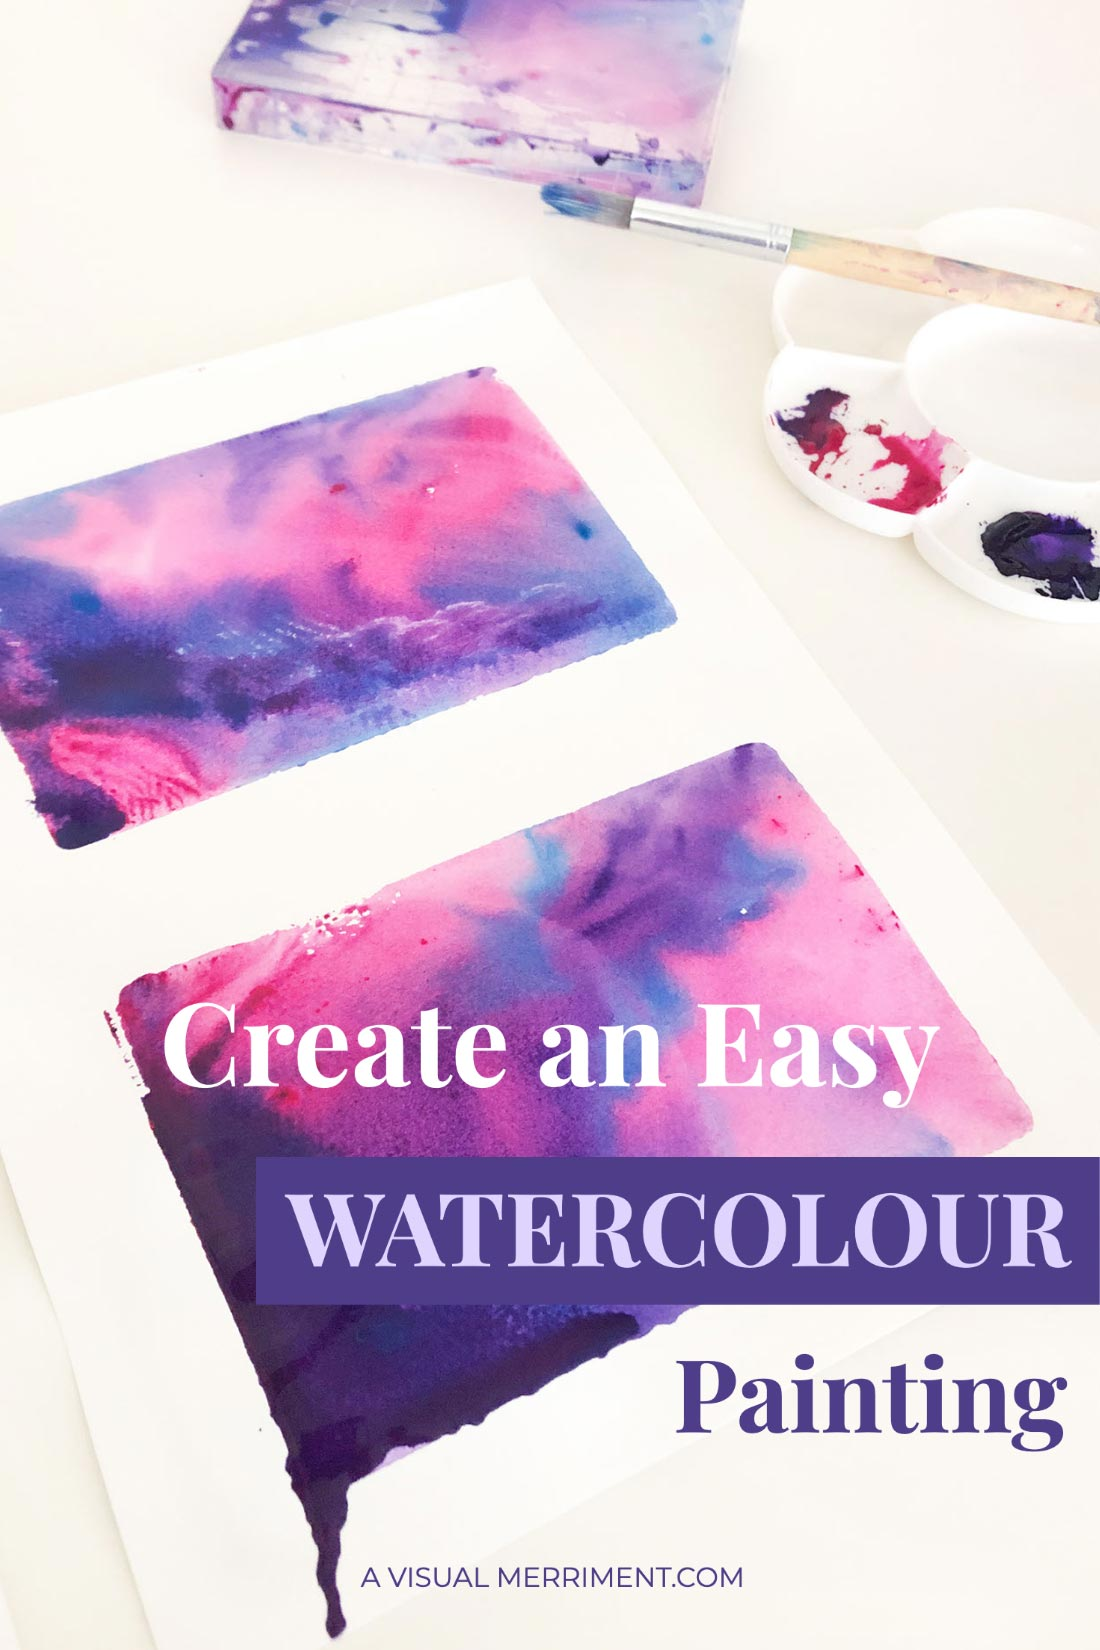 Watercolour paint supplies and artwork graphic